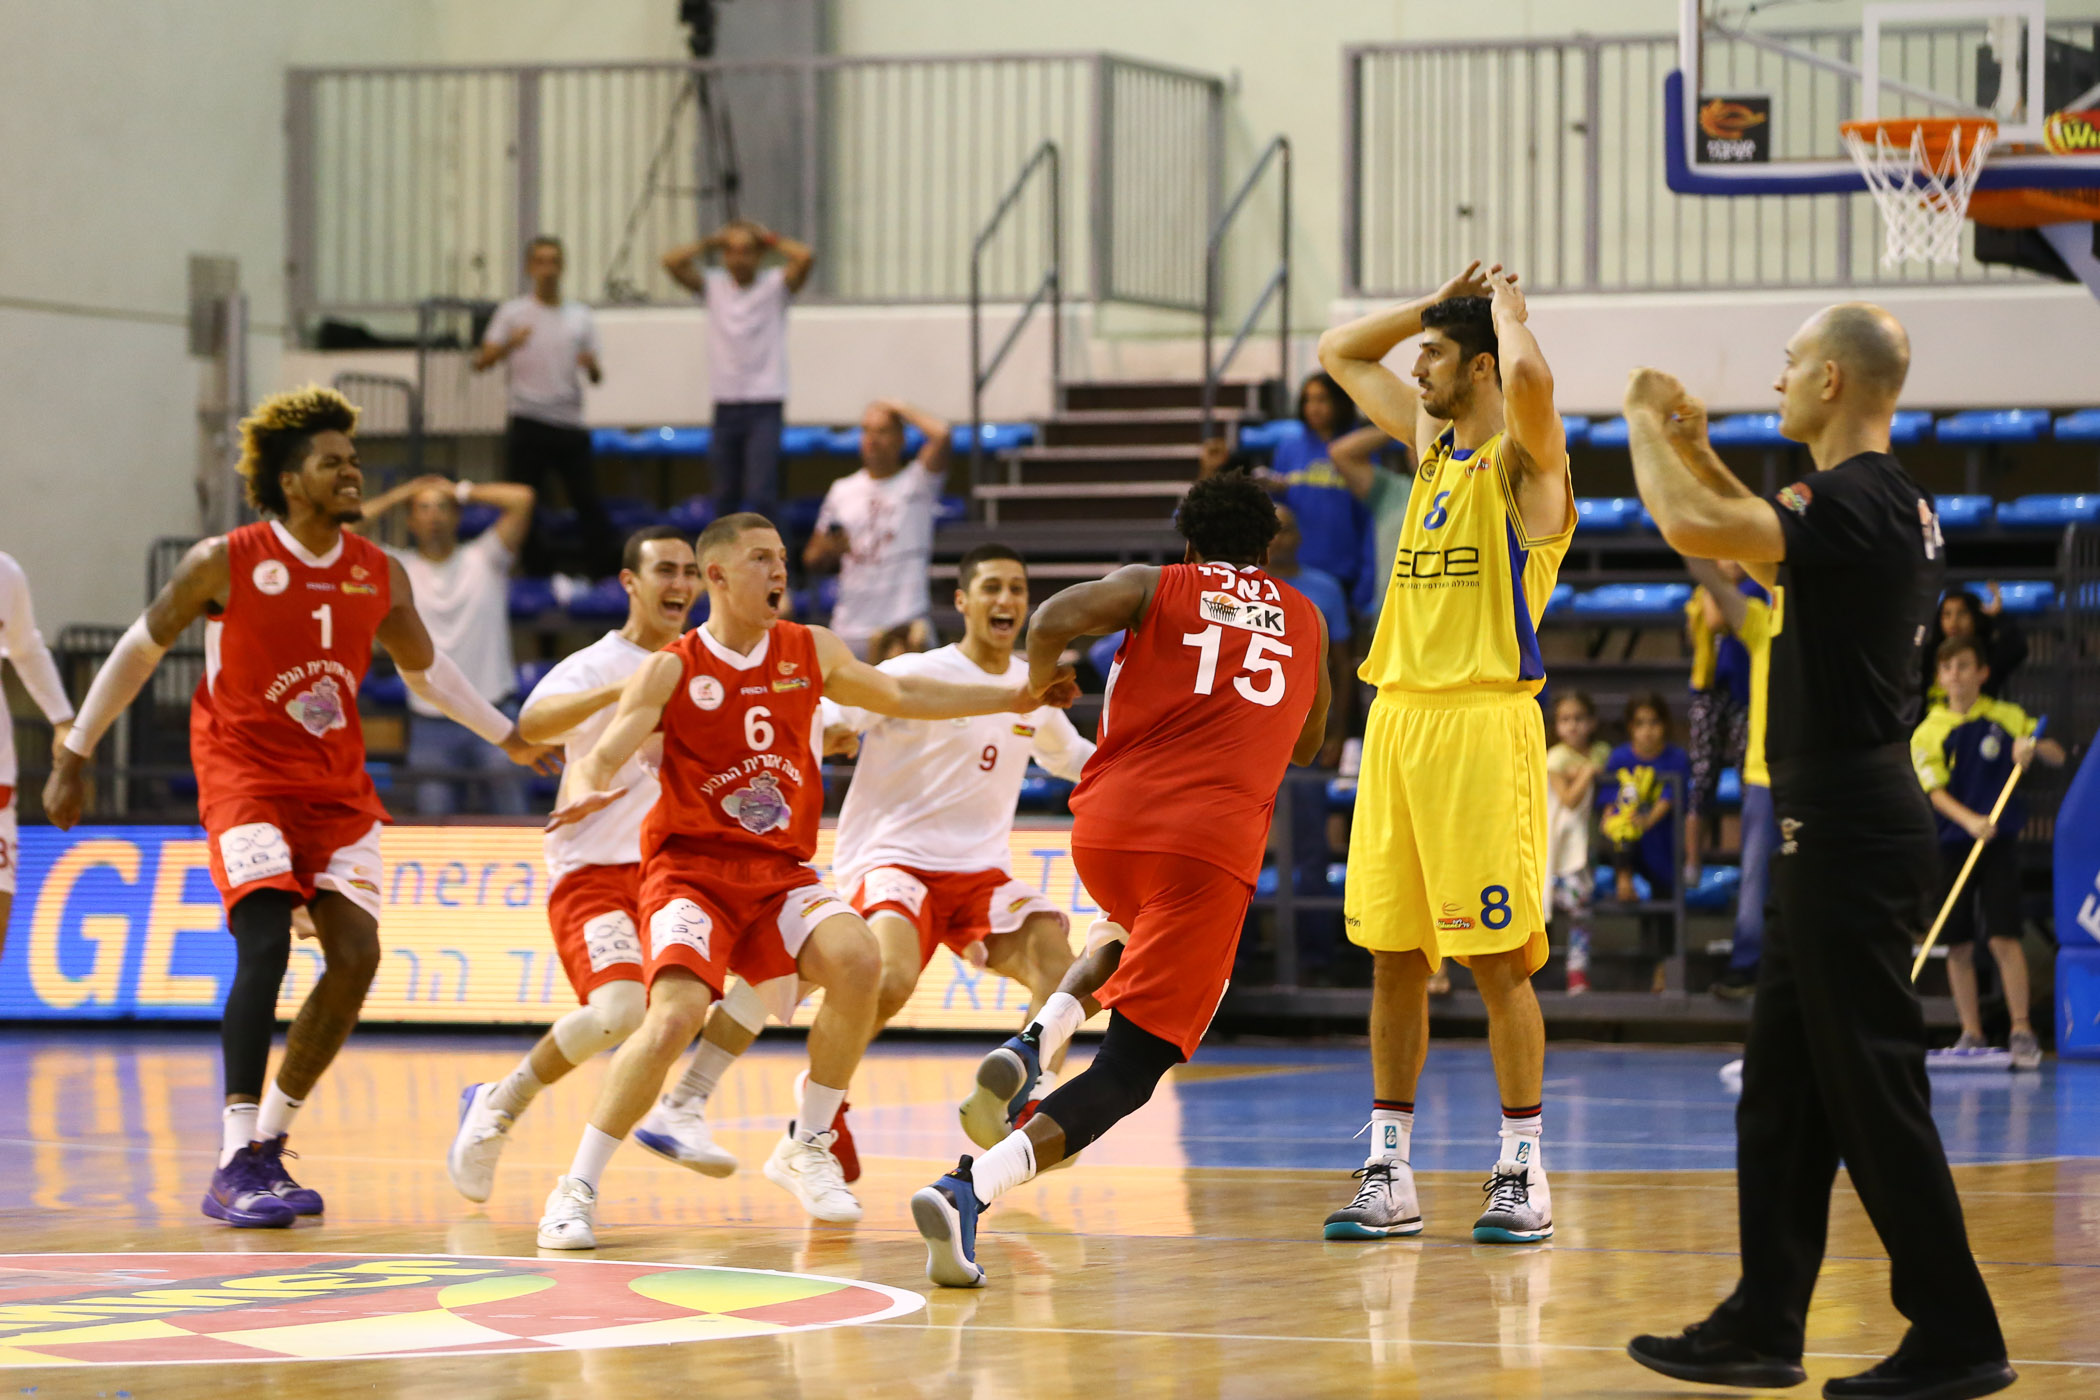 Day 4: Ashdod - Gilboa/Galil 89:91, OT